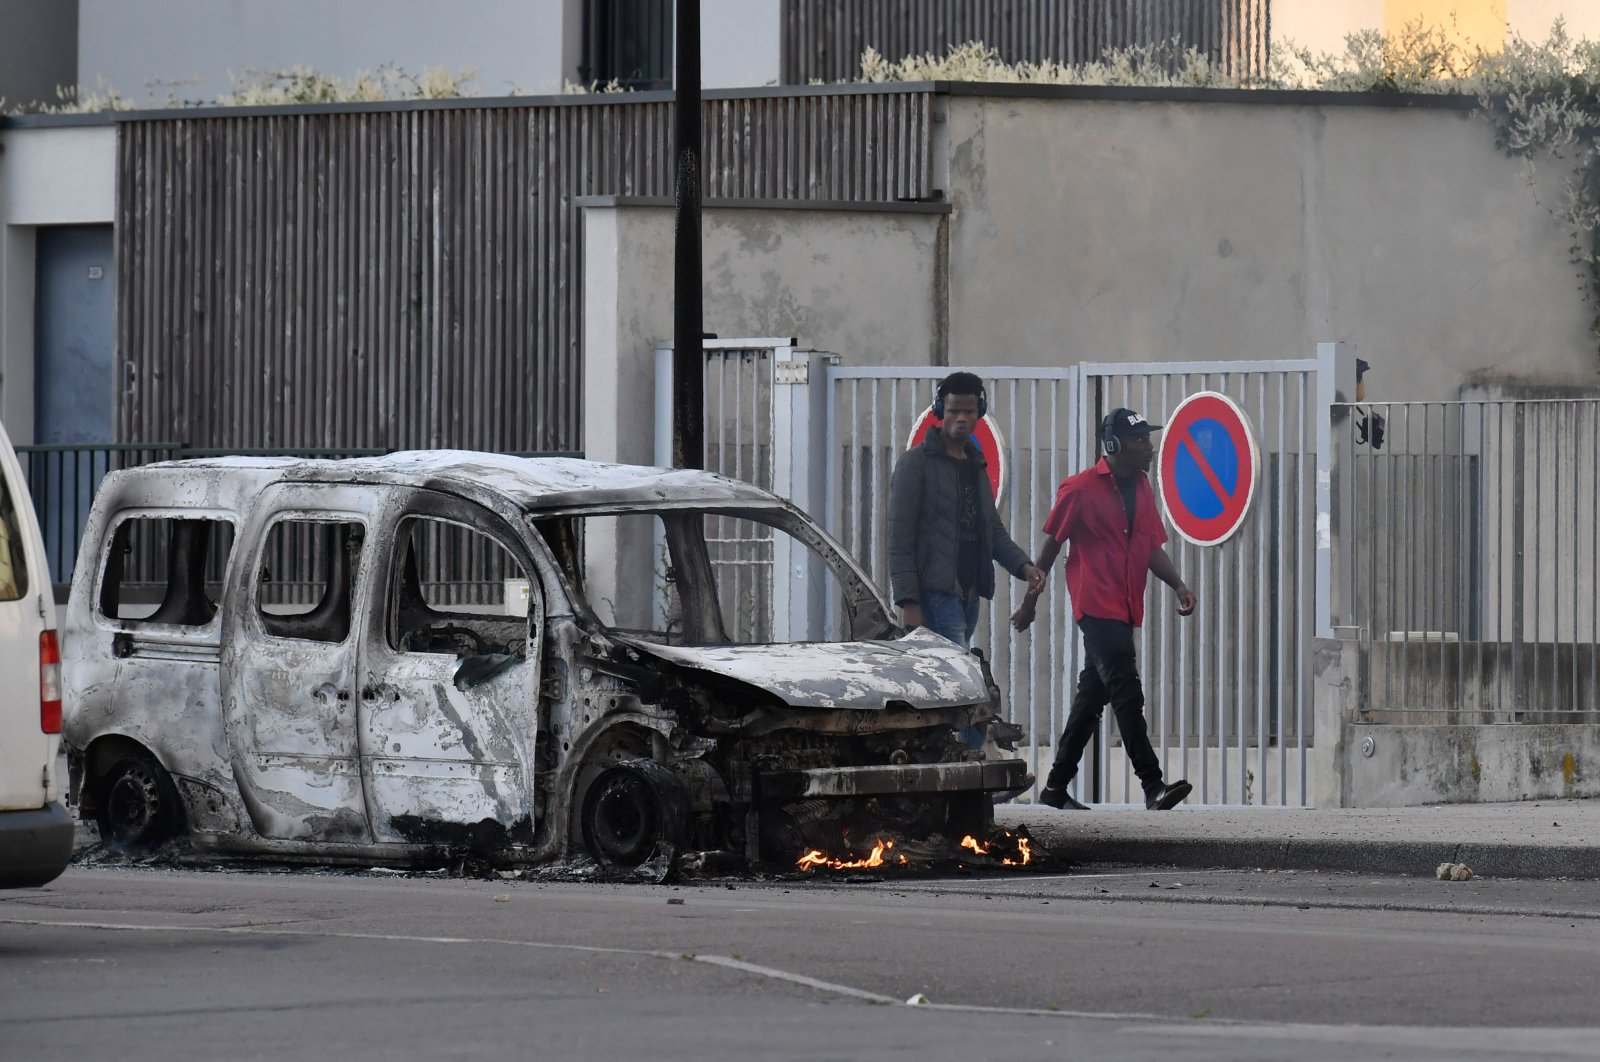 People walk past a burnt van in the Gresilles area of Dijon, France, June 15, 2020. (AFP Photo)